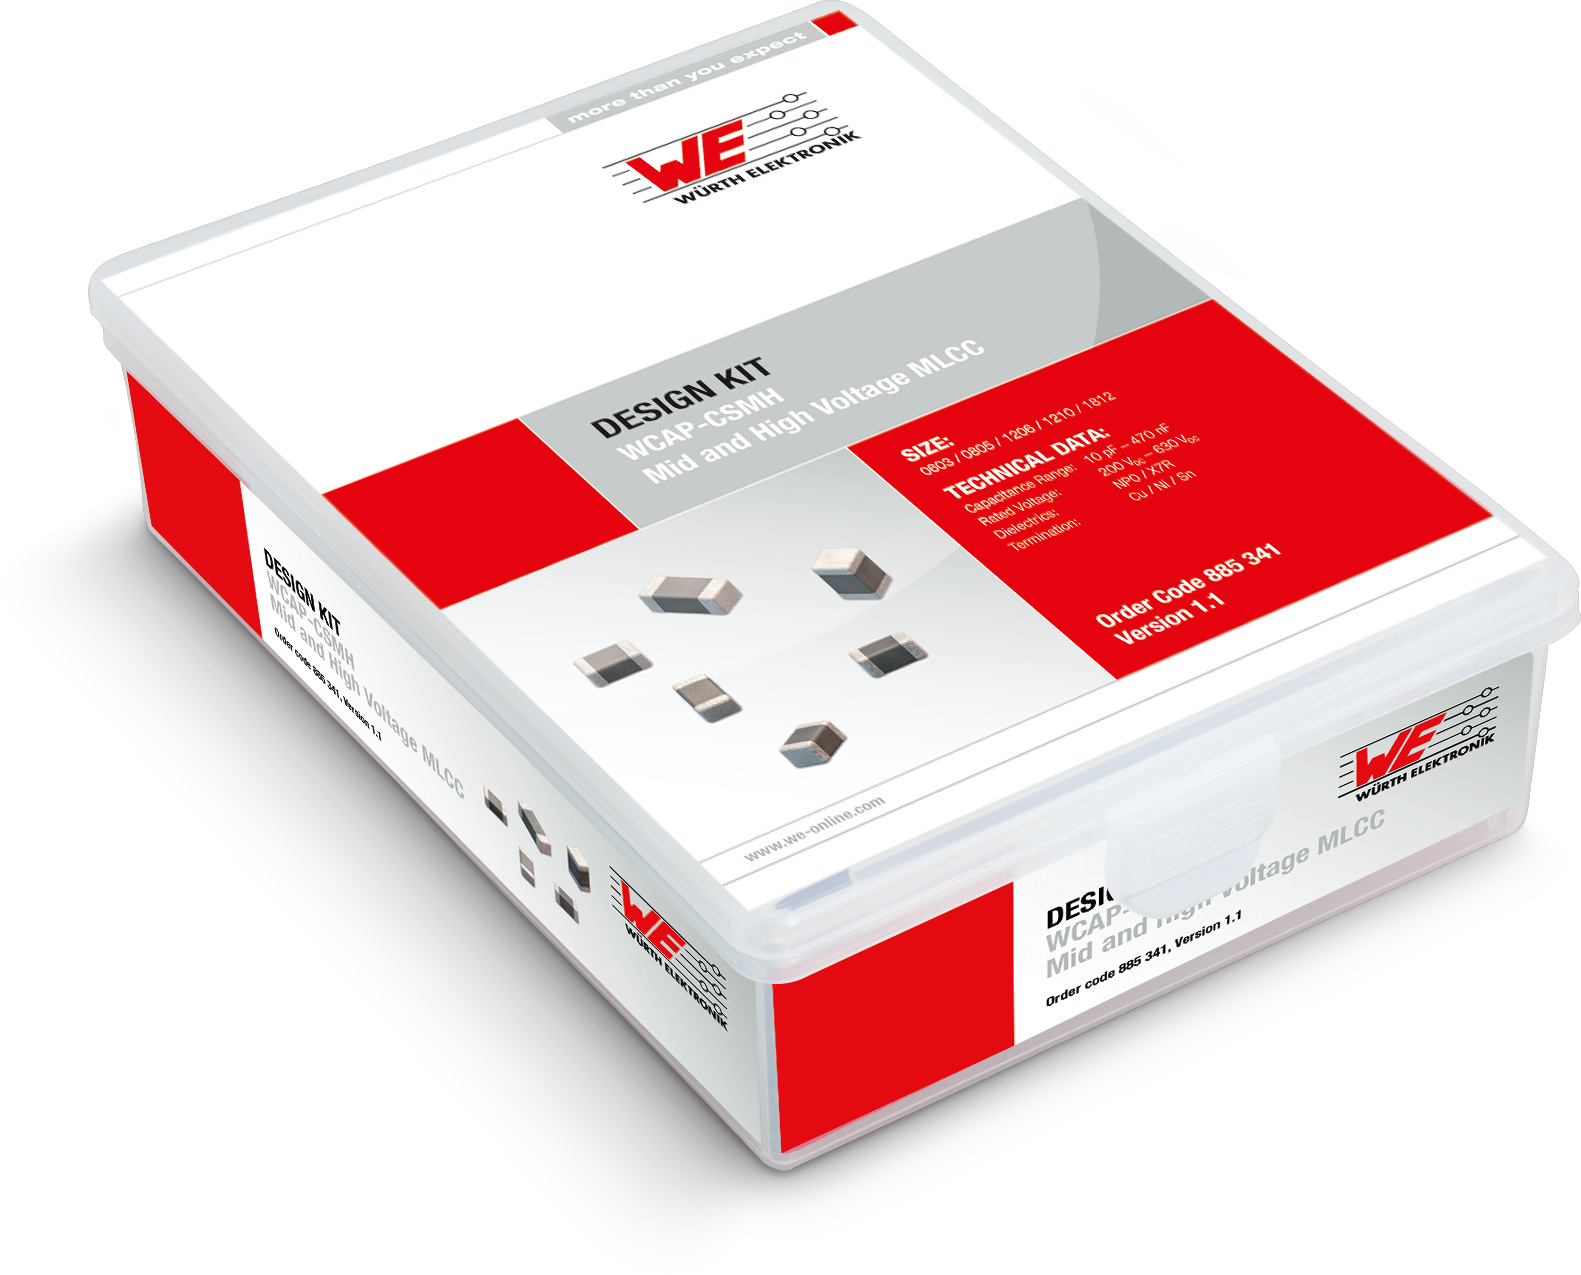 Design Kit WCAP-CSMH Mid and High Voltage MLC Picture